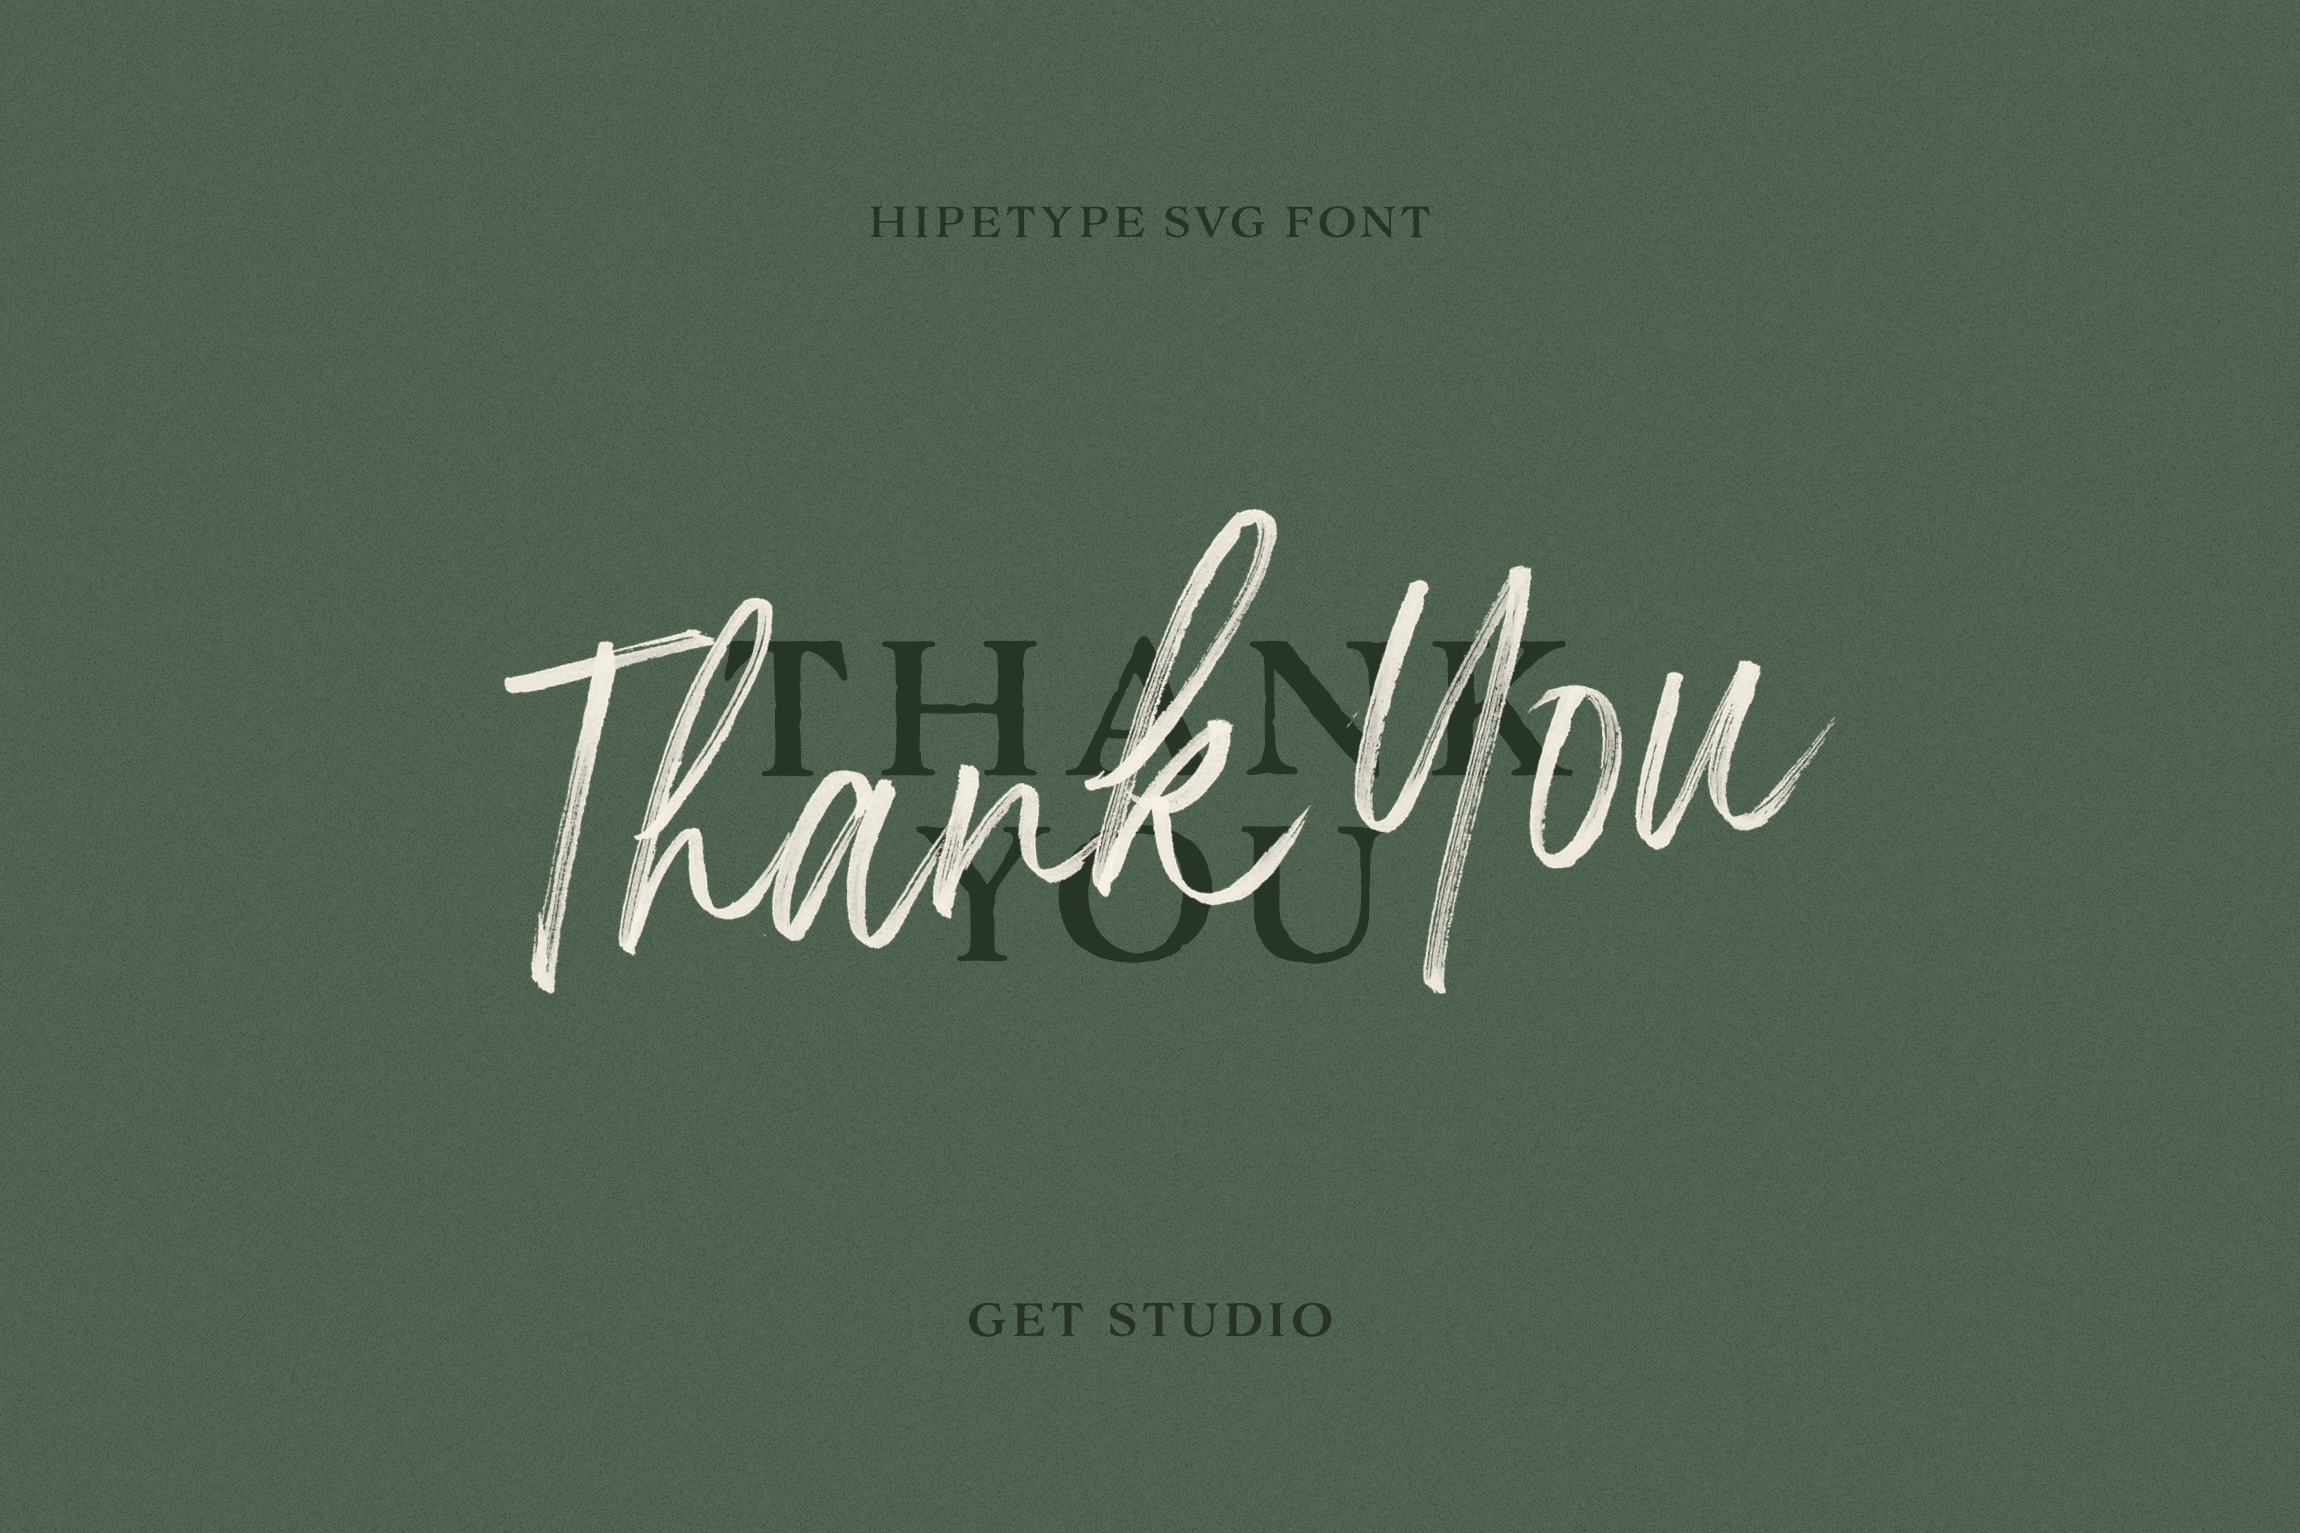 Hipetype SVG Font example image 10